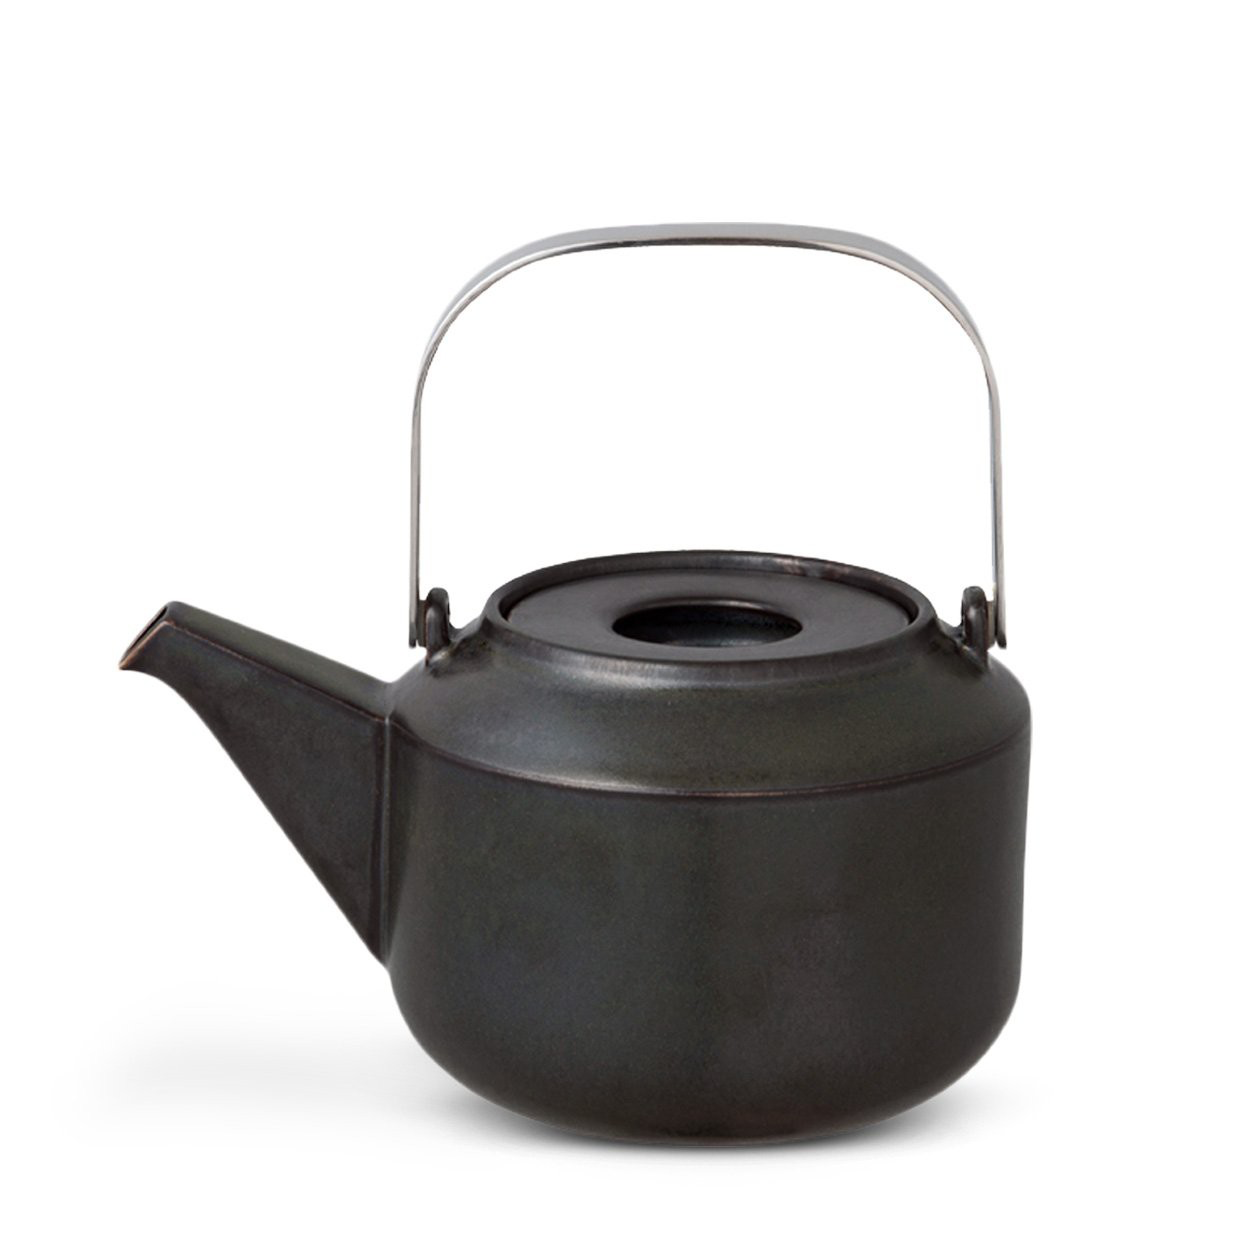 Ceramic 'LT' Teapot - Black